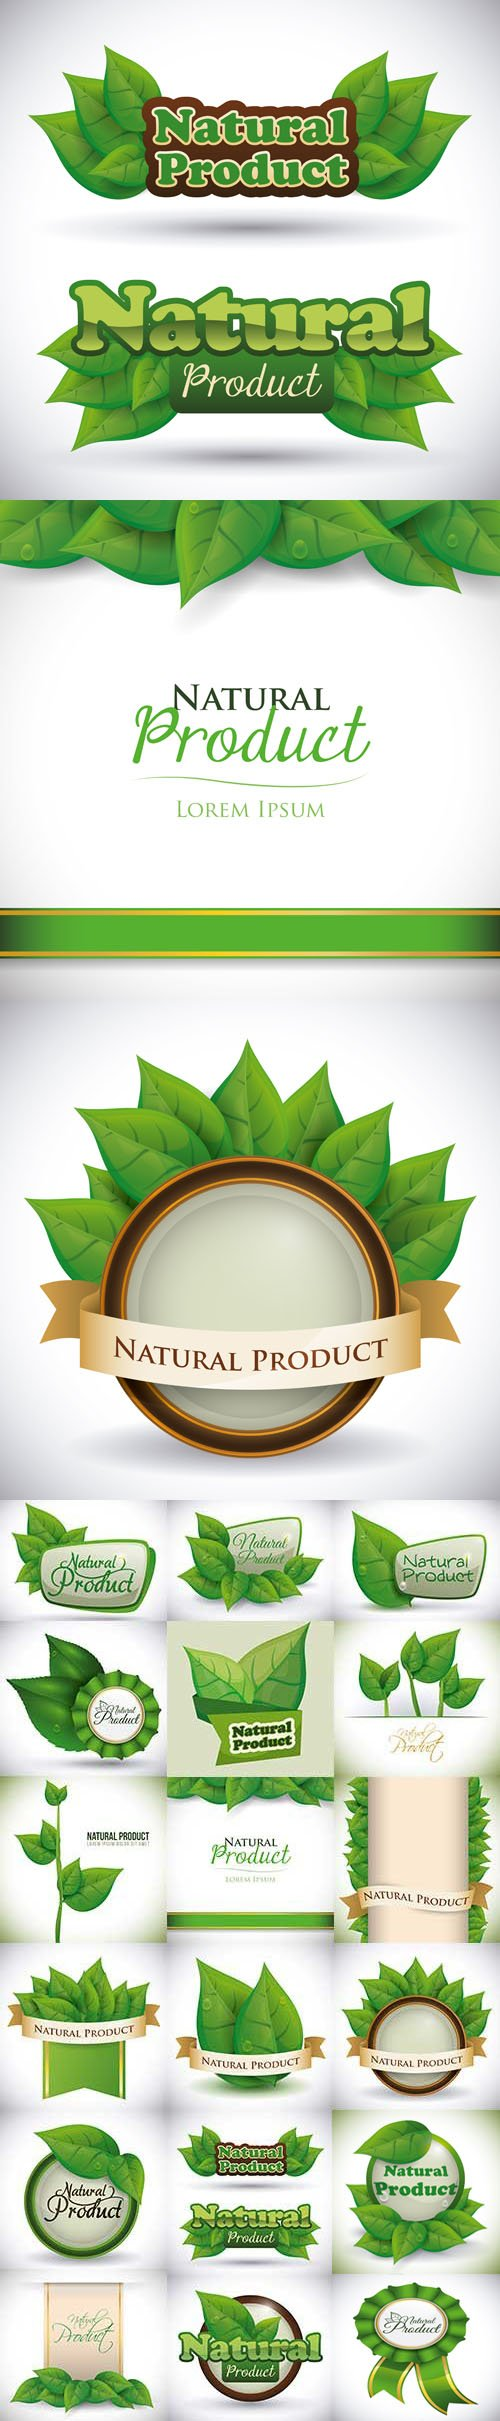 Natural Product Icons in Vector